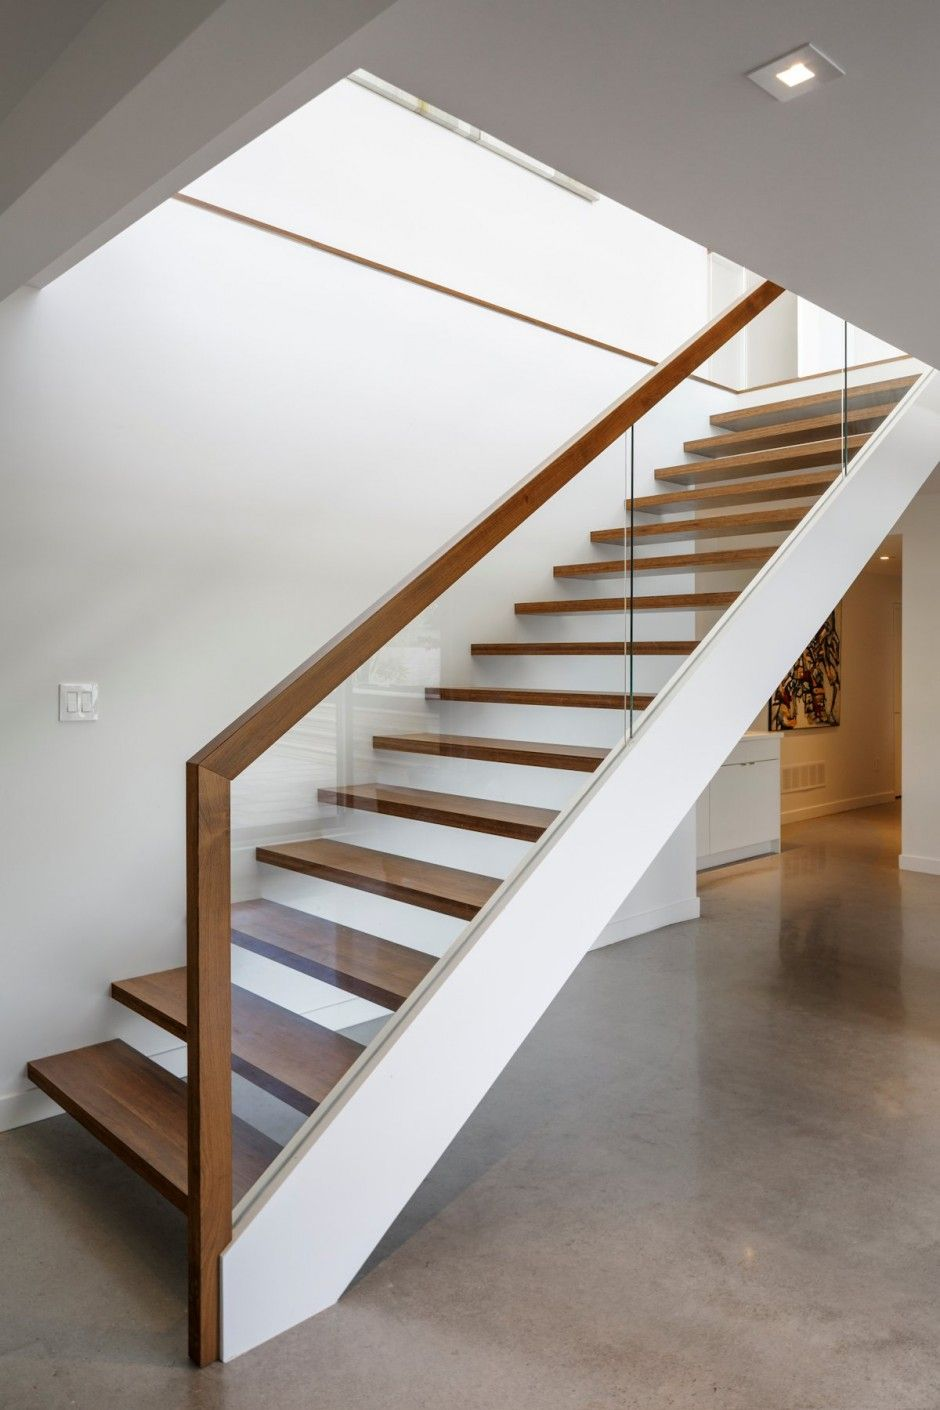 Dunrobin Shore By Christopher Simmonds Architect | Wood And Glass Handrail